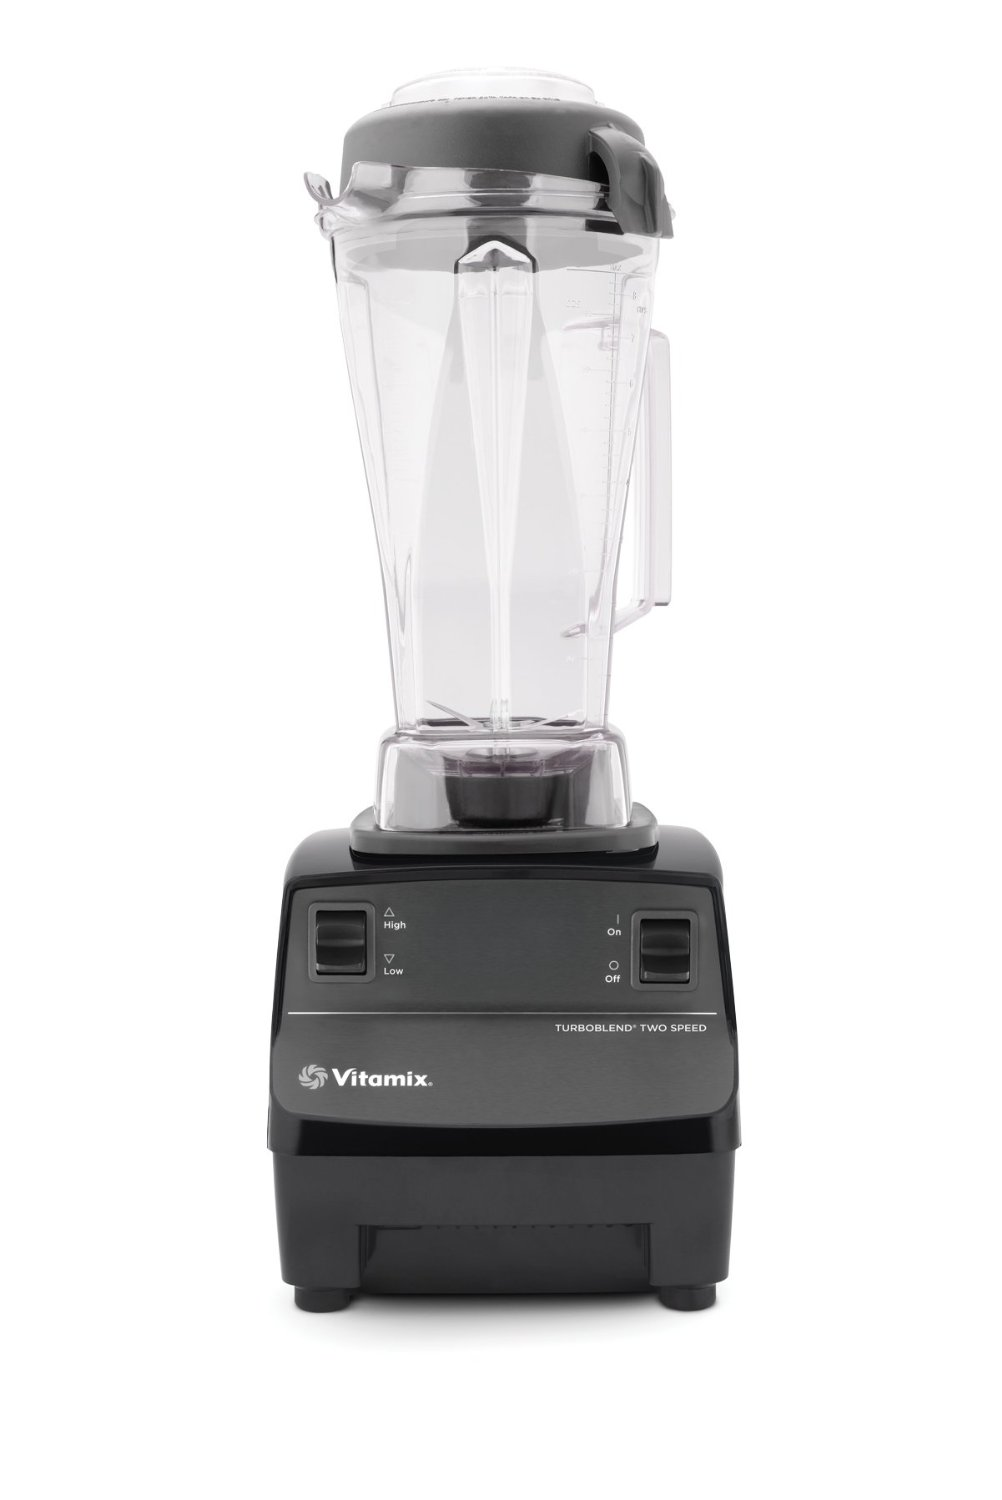 A product image of a vitamix on a list of the top 6 best kitchen tools for real foodies